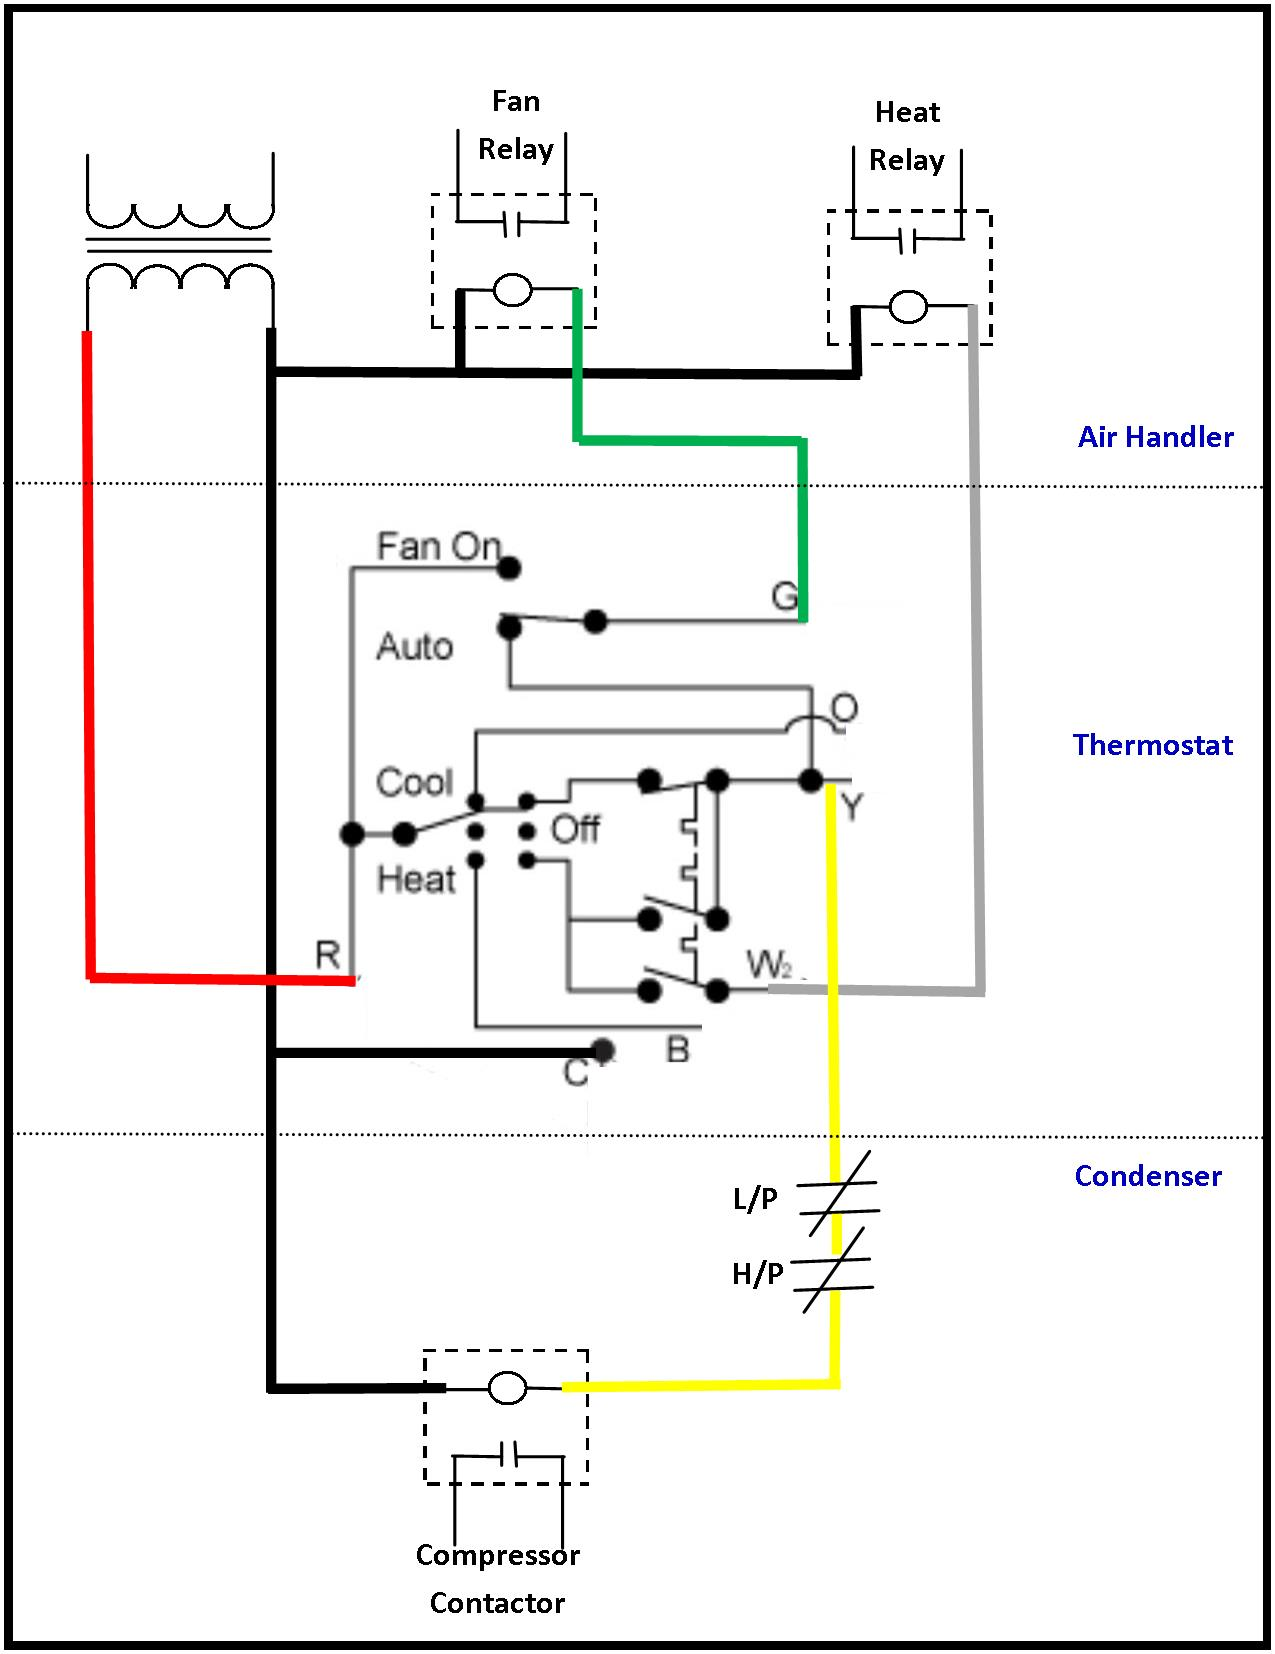 AC low voltage wiring diagram1 hvac contactor wiring diagram hvac condenser wiring diagram 24v thermostat wiring diagram at panicattacktreatment.co